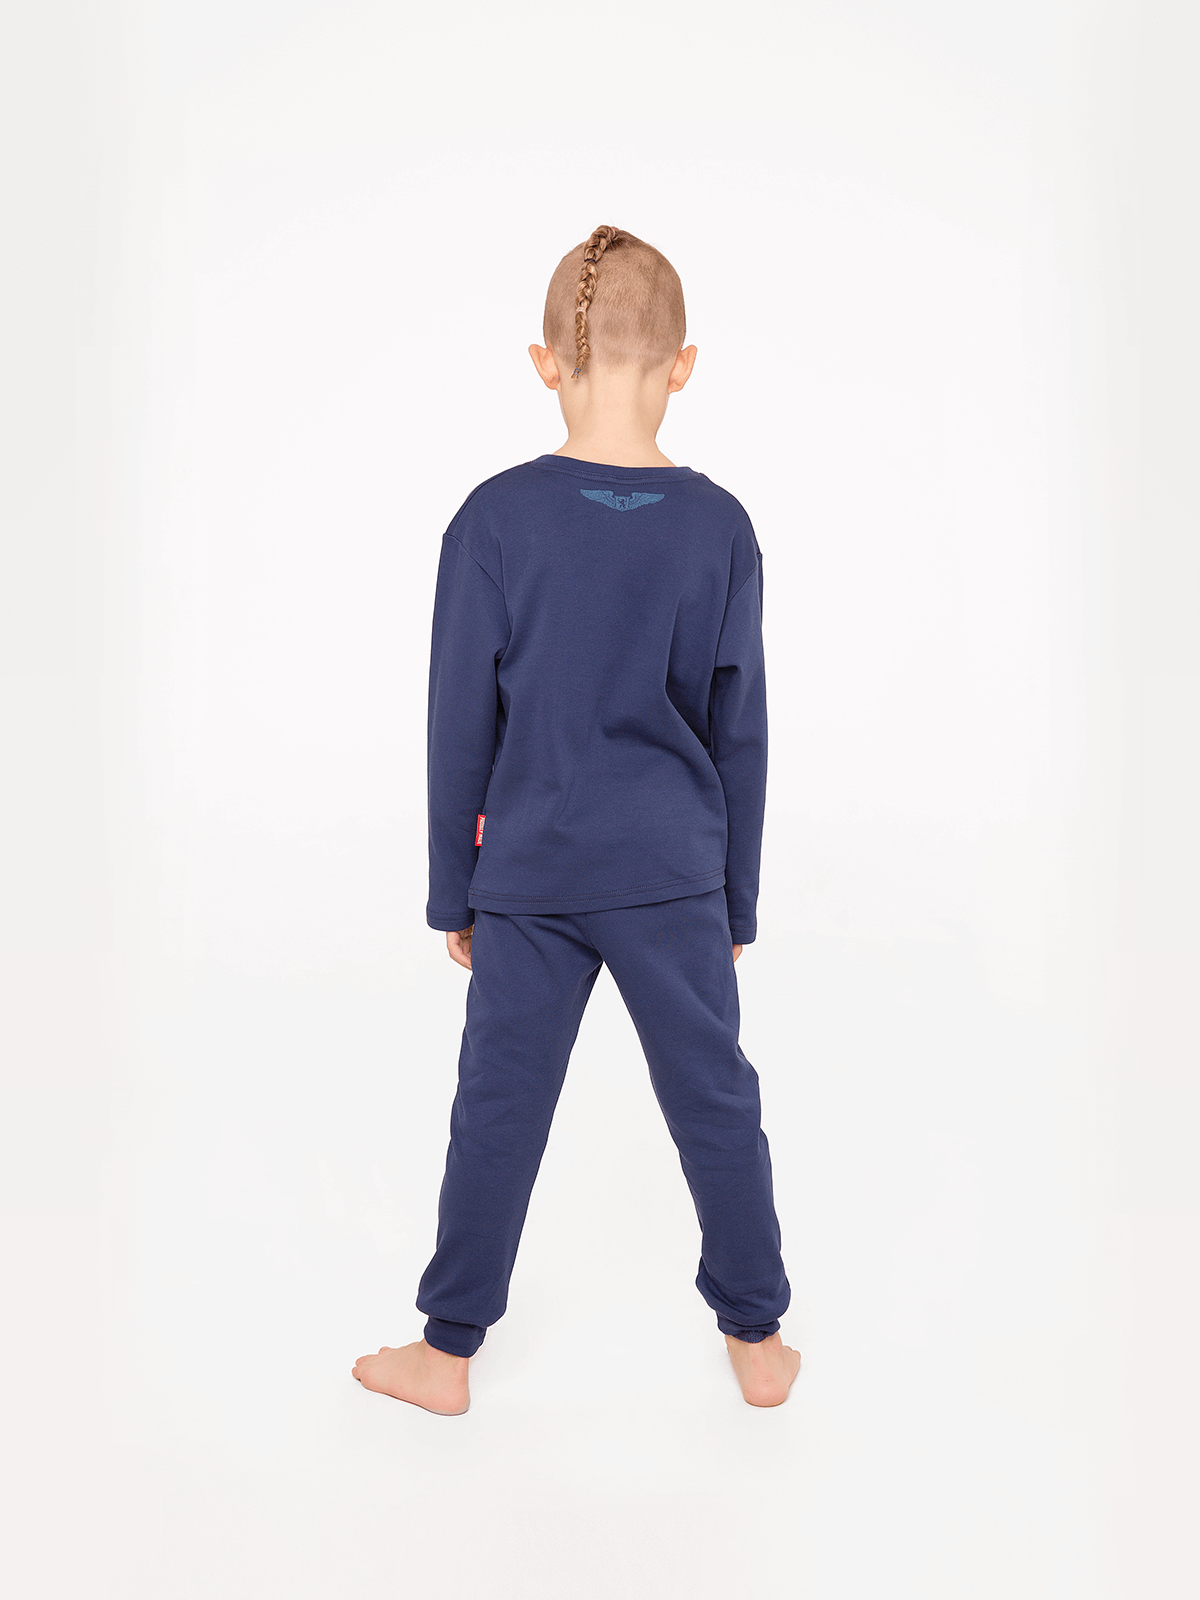 Kids Pajamas Space Shepherd. Color navy blue.  The color shades on your screen may differ from the original color.